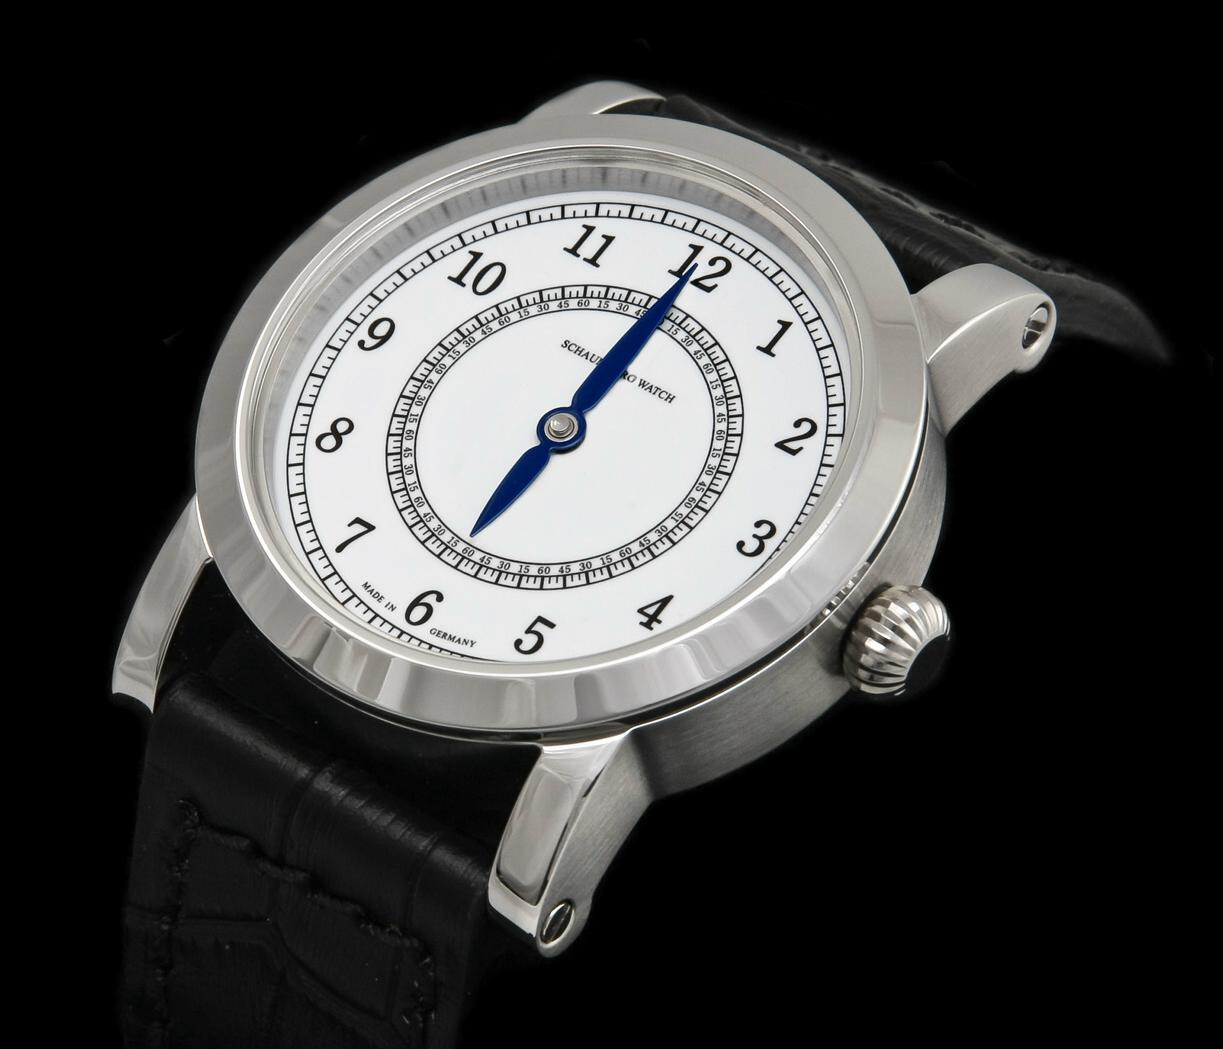 Schaumburg Watch Gnomonik Convert